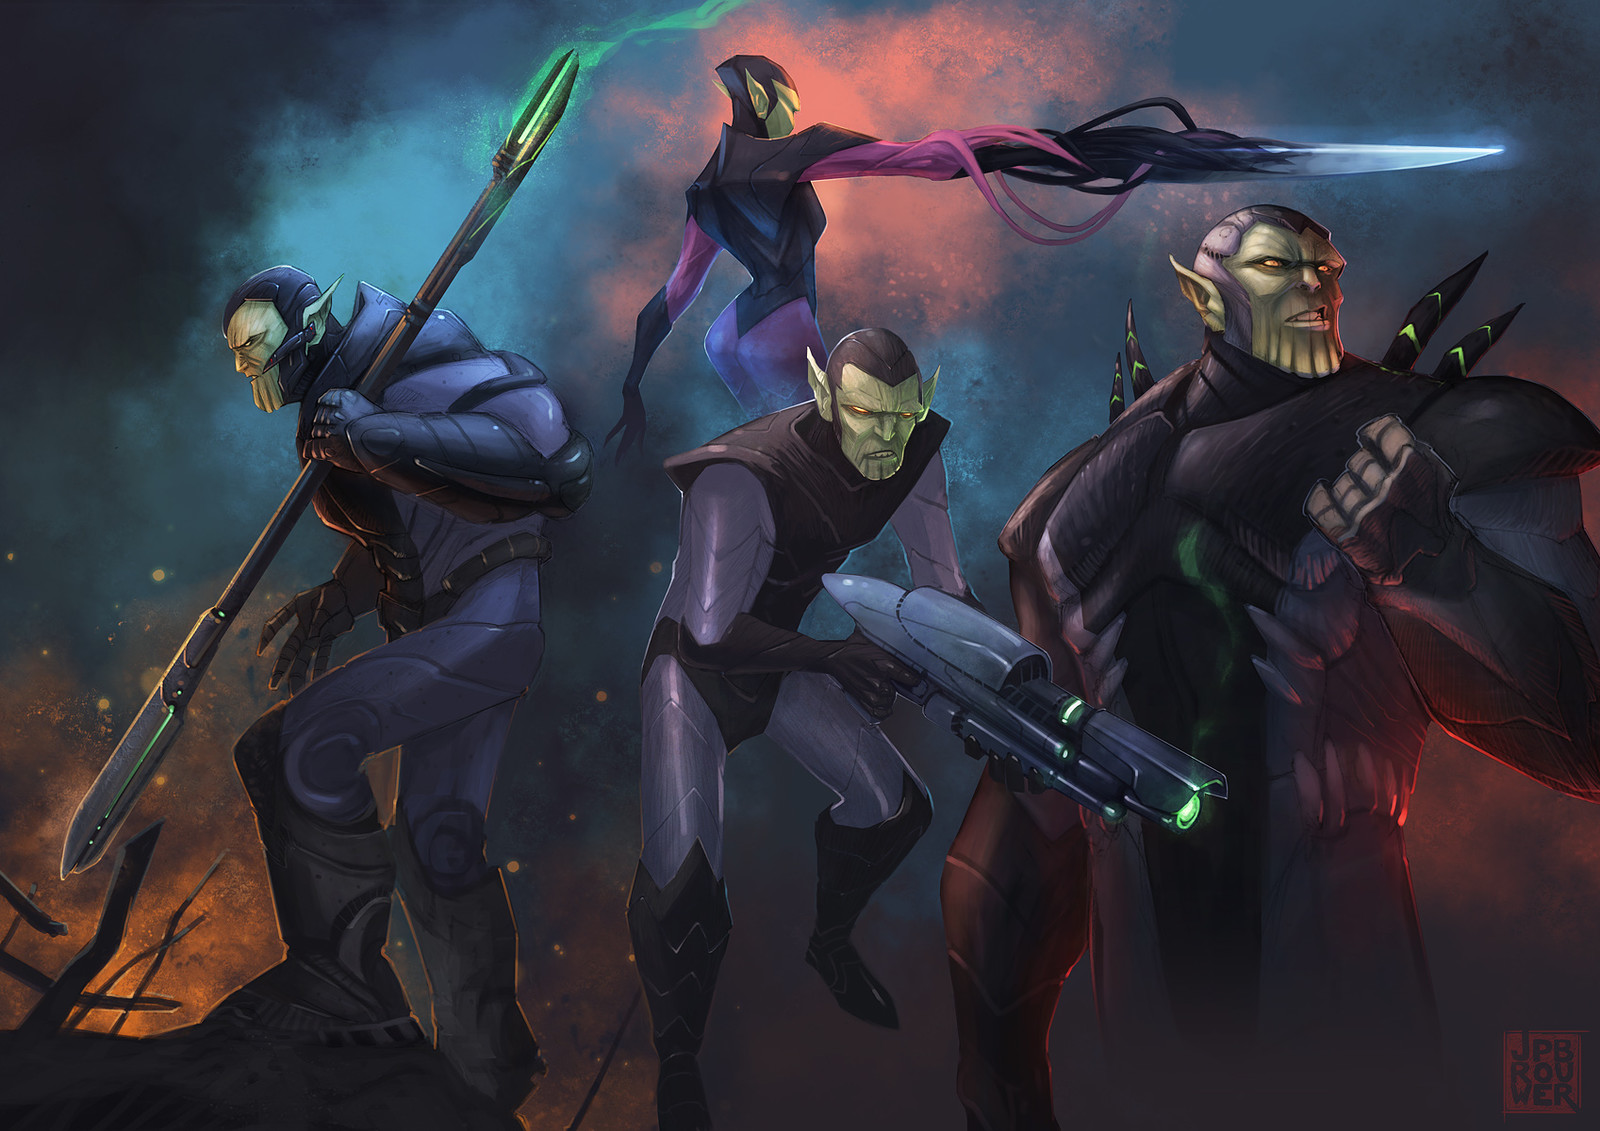 Skrull character and weapon concepts